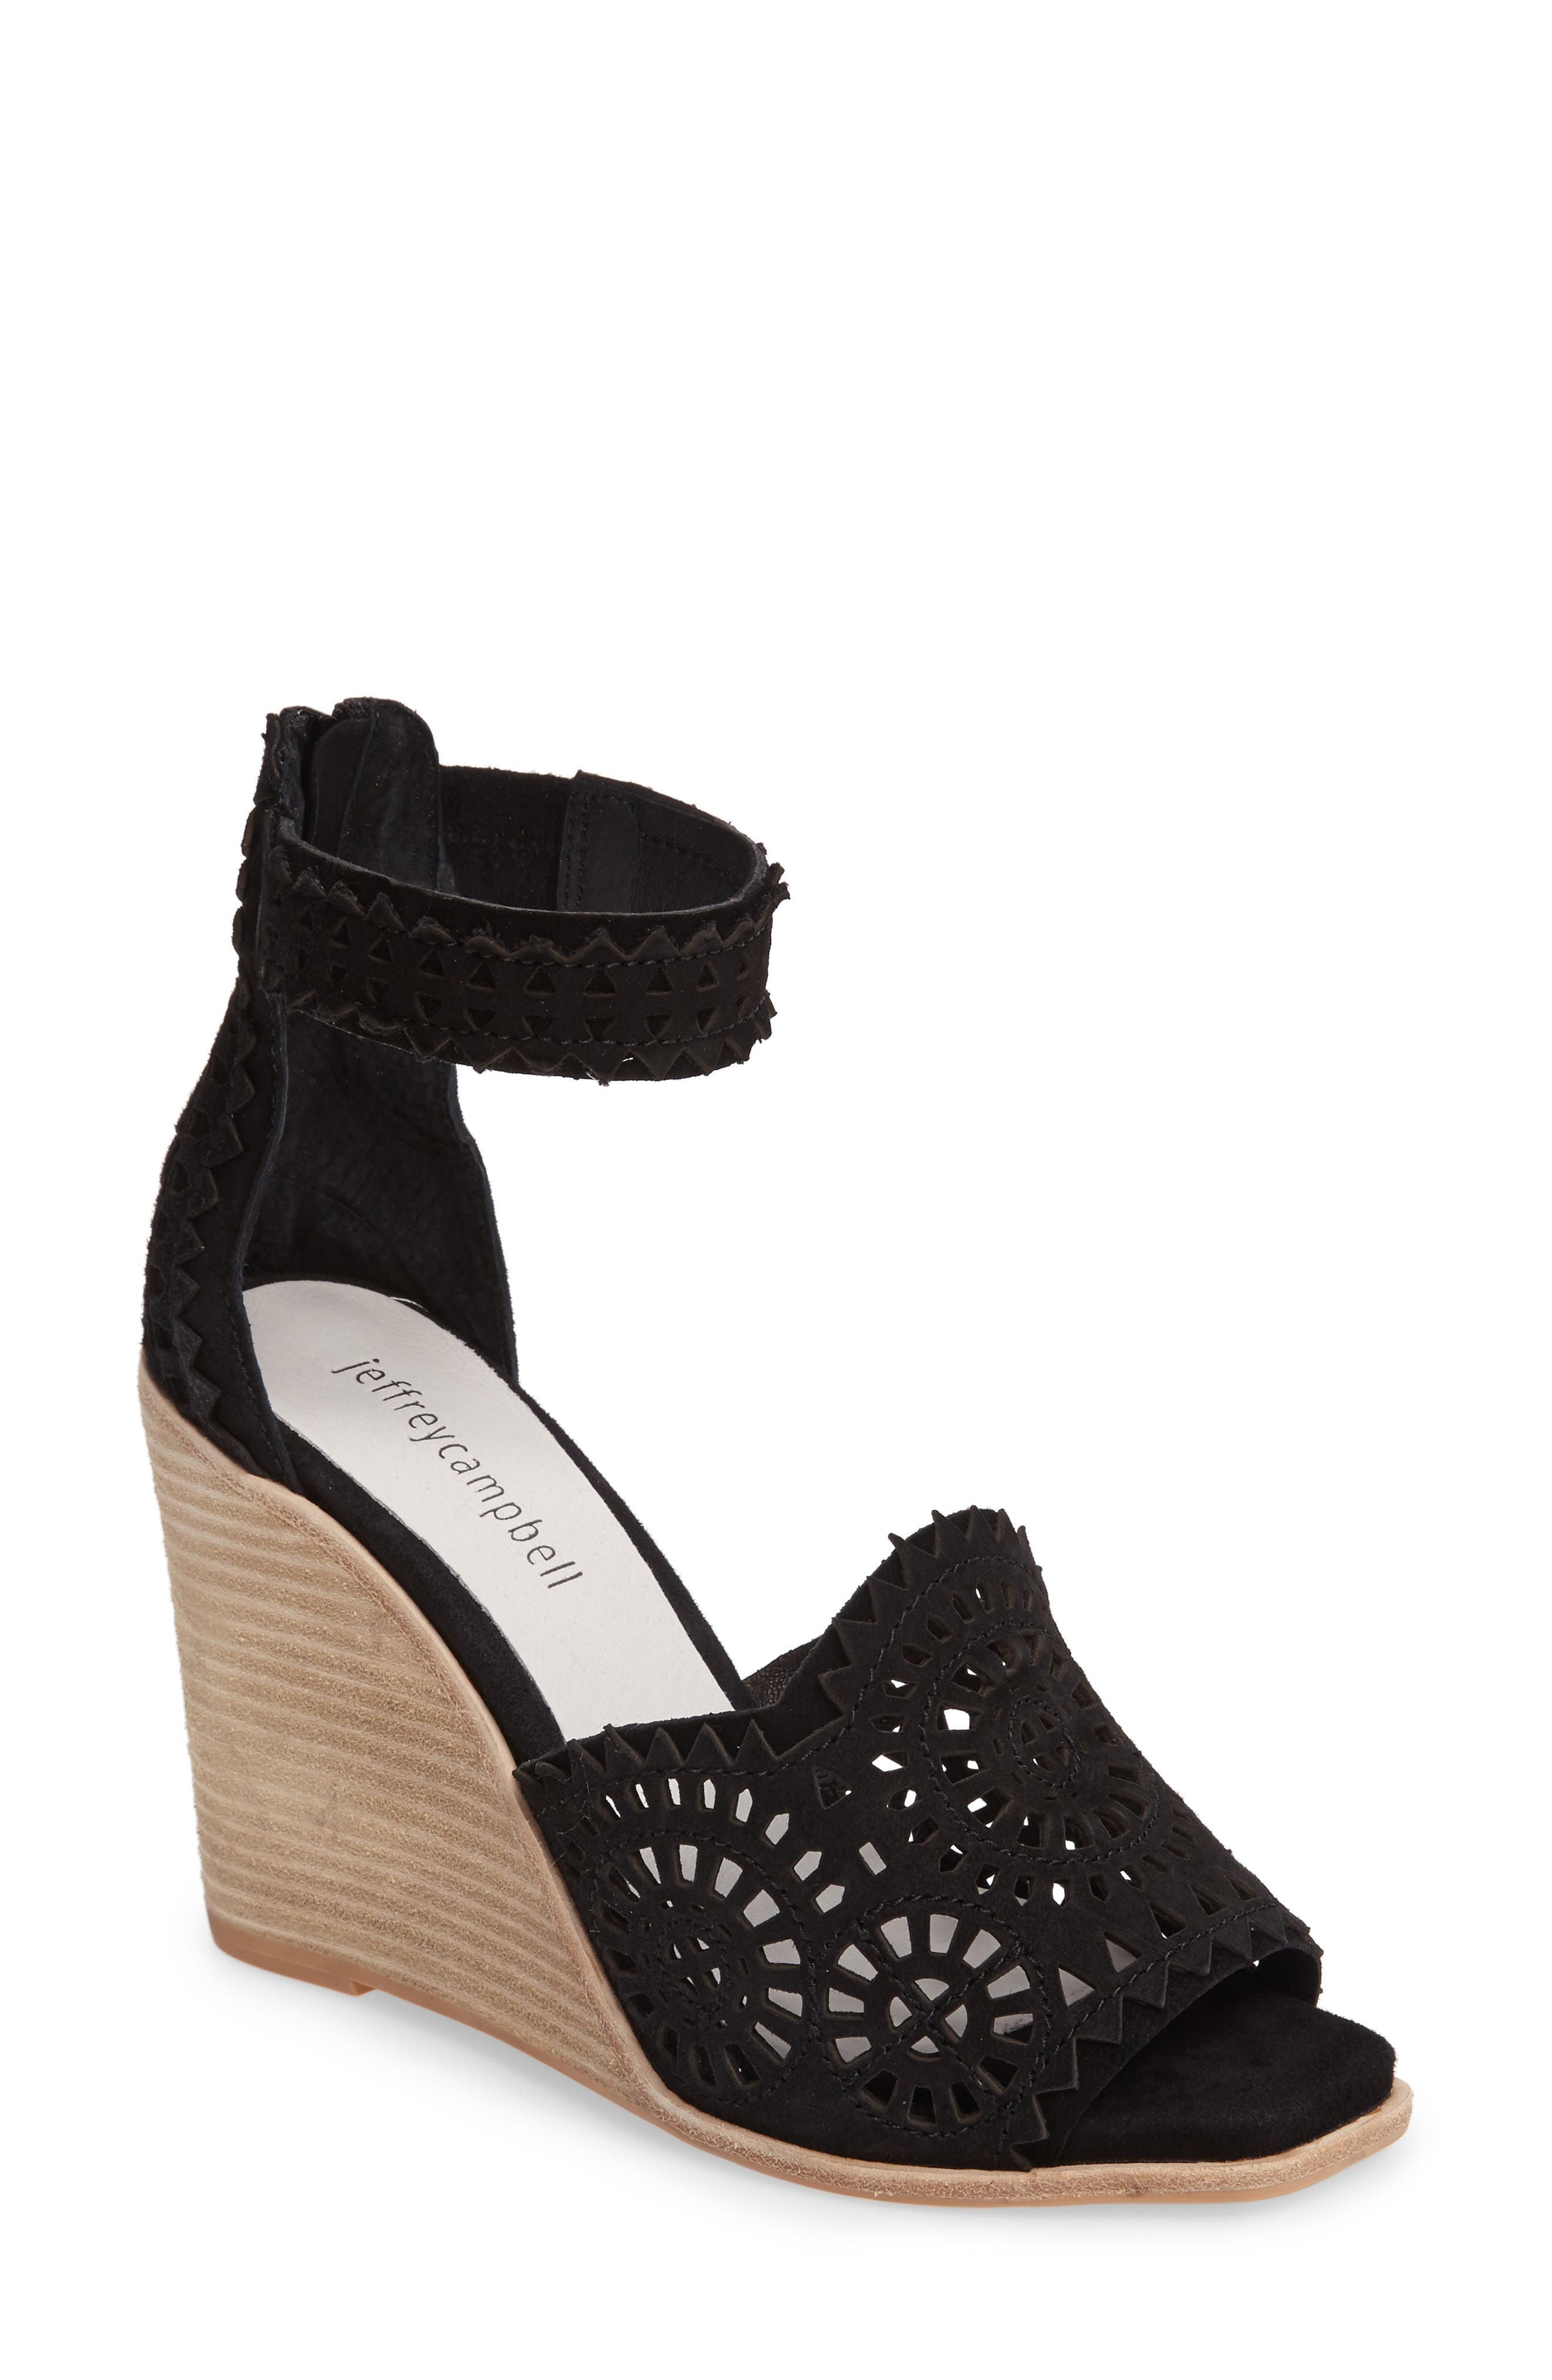 Del Sol Wedge Sandal,                             Main thumbnail 1, color,                             004